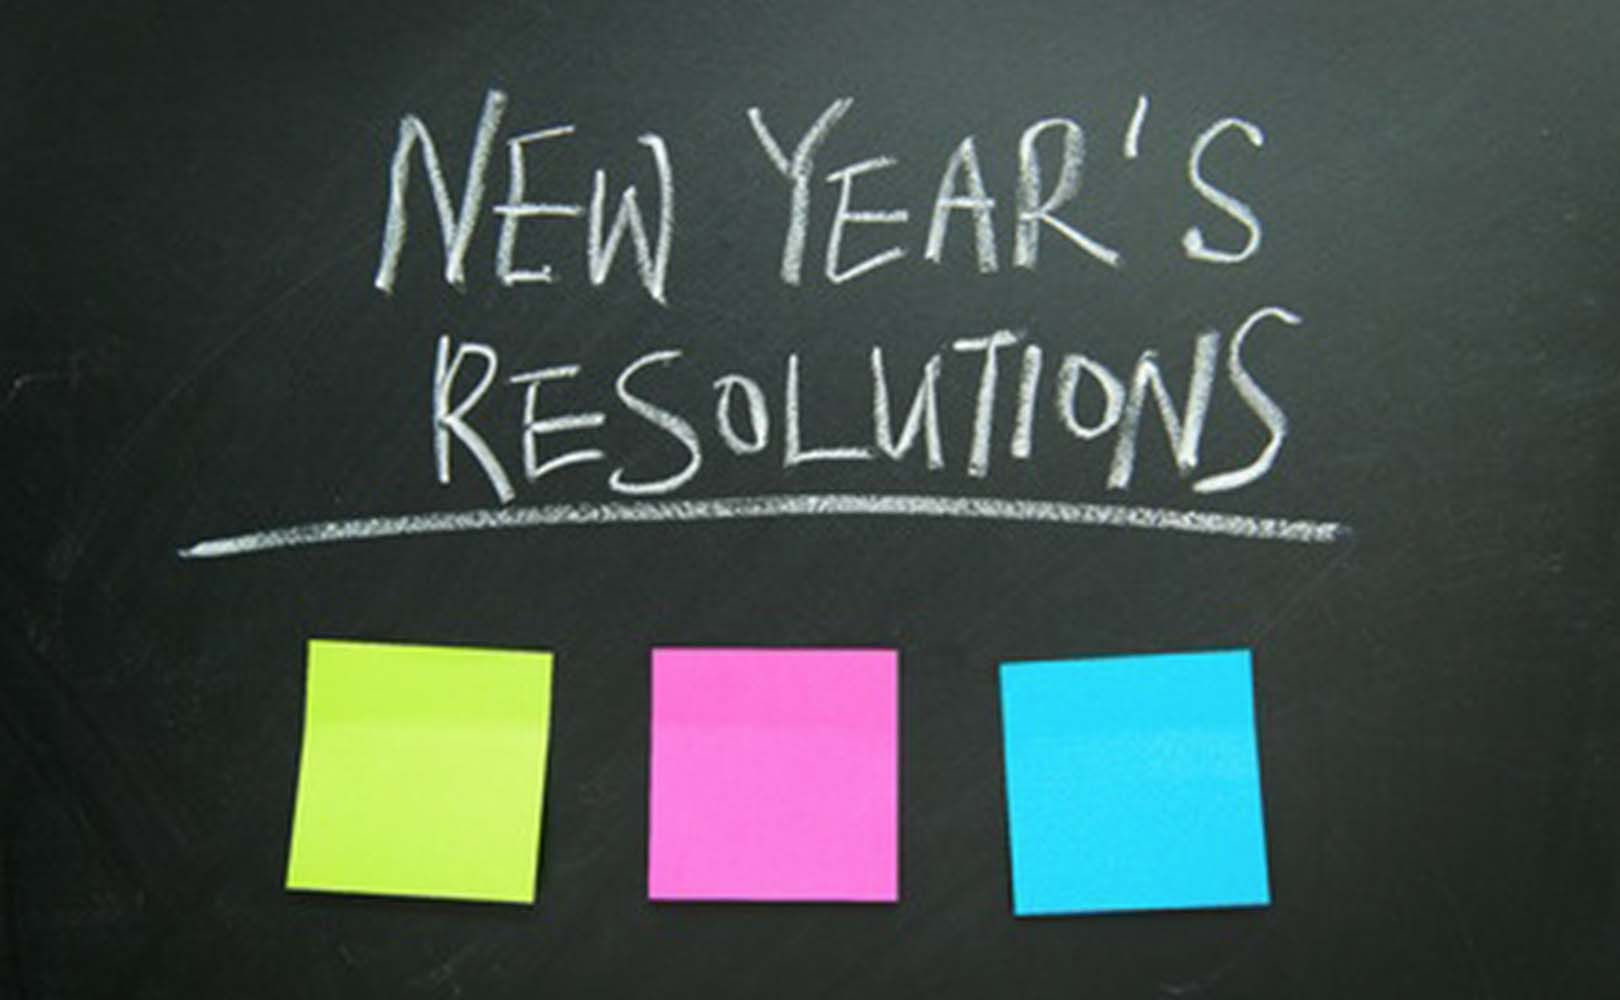 chalk board with 'New Year's Resolutions' at top and three multi-colored notes placed below